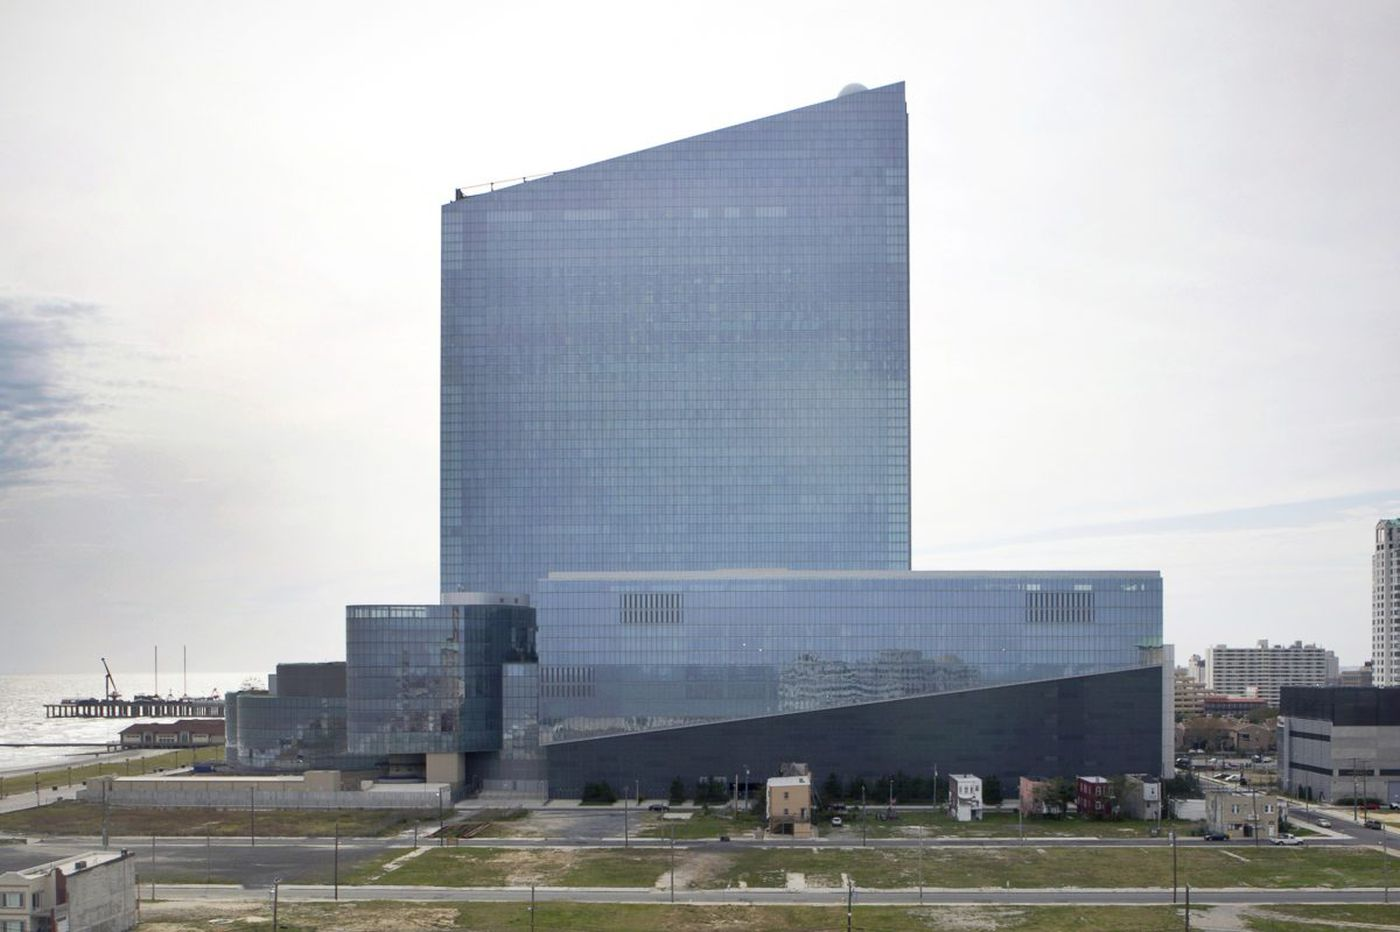 Revel suitor firm said to be under contract to buy land beside casino